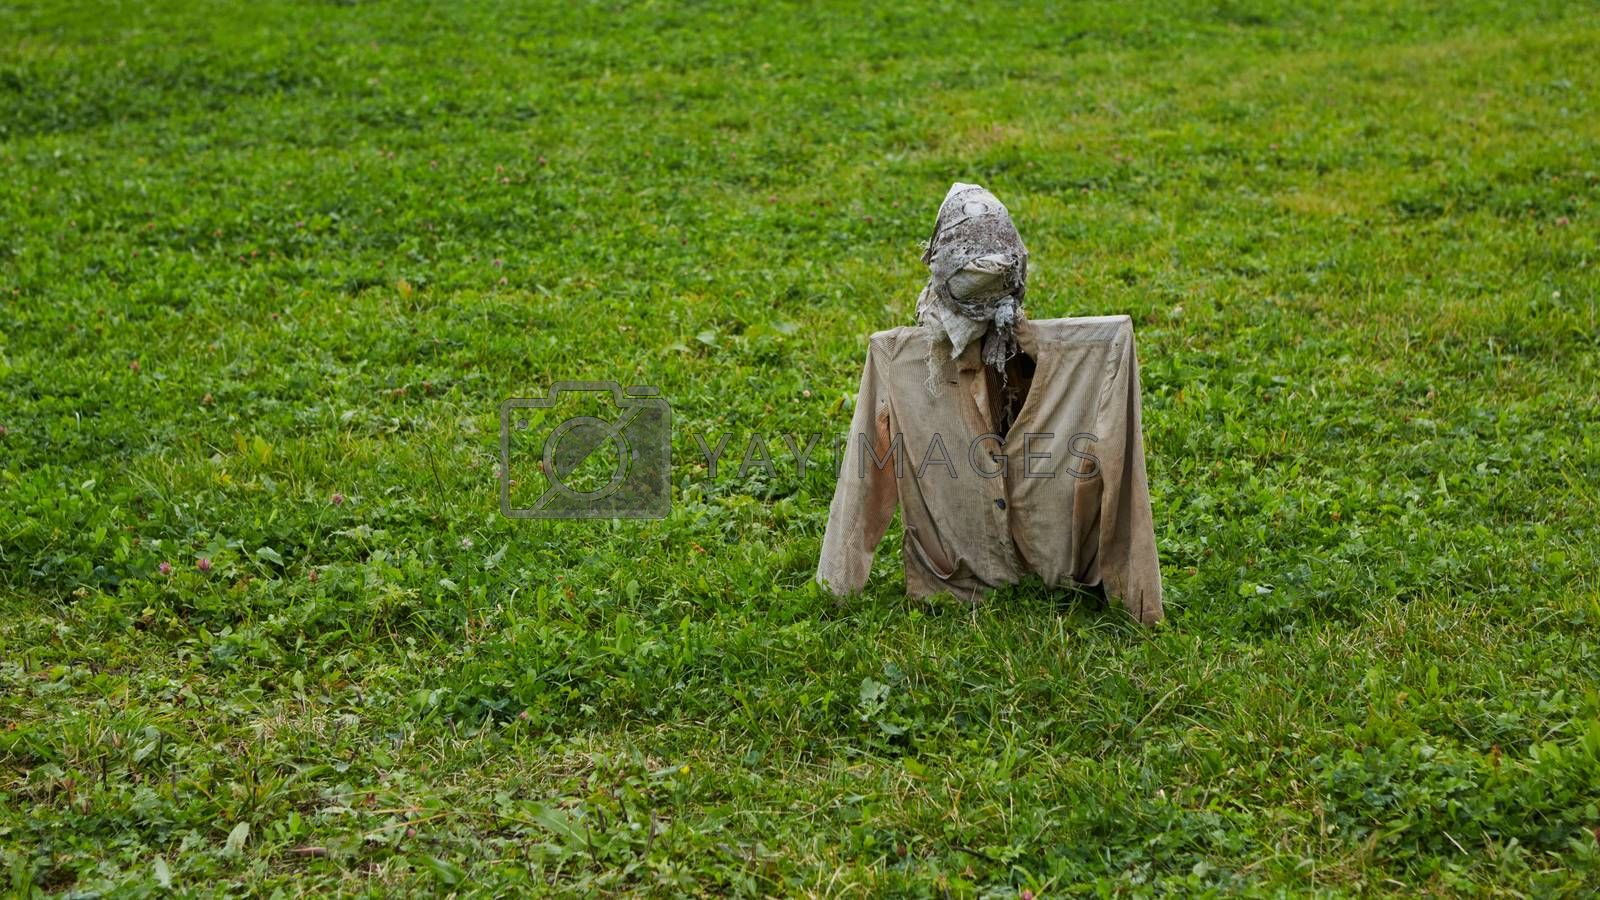 Scarecrow in field. Scarecrow on nature background.